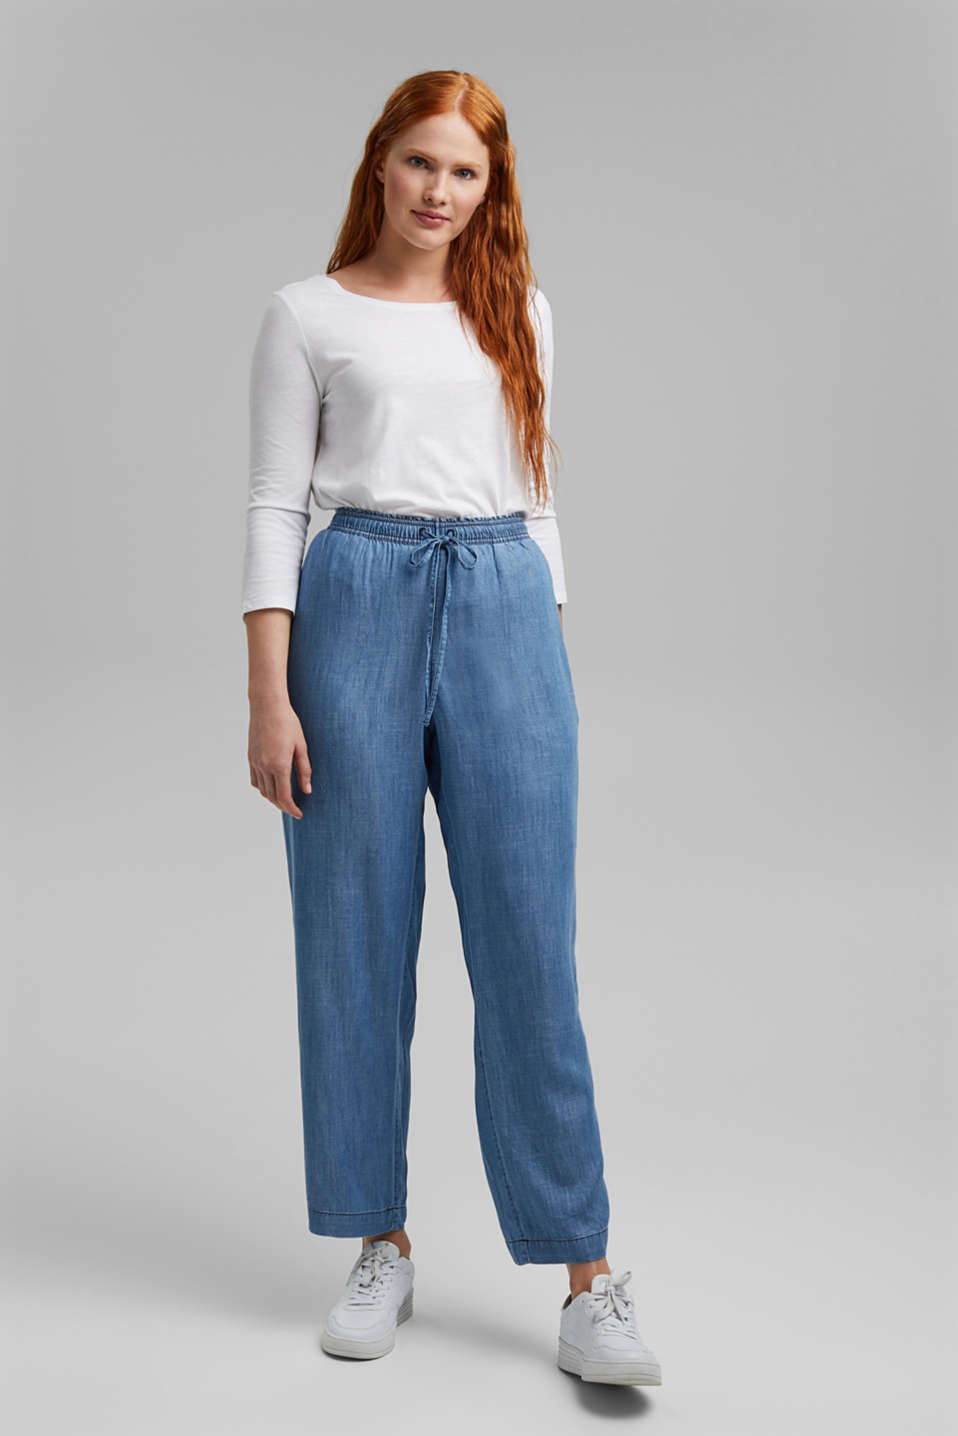 Esprit - CURVY TENCEL™: denim-look tracksuit bottoms